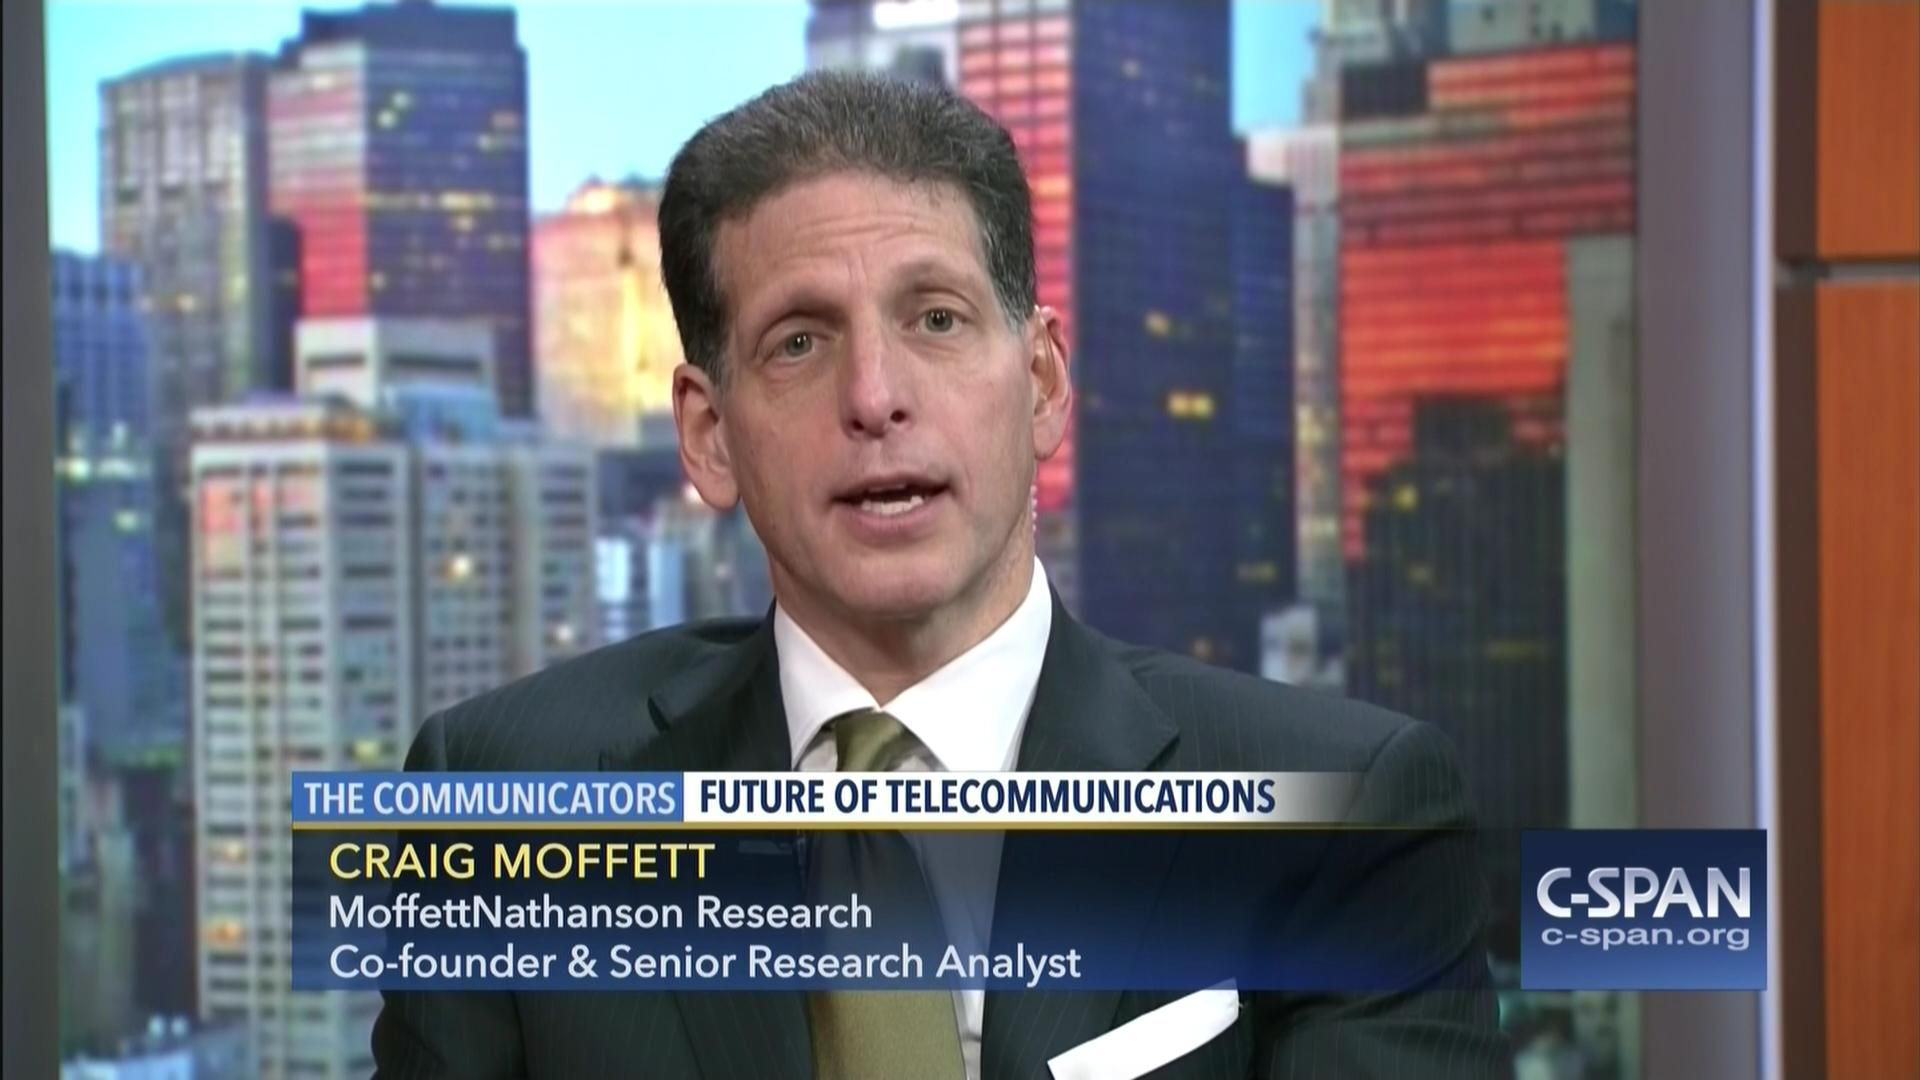 Craig Moffett appearing on C-SPAN